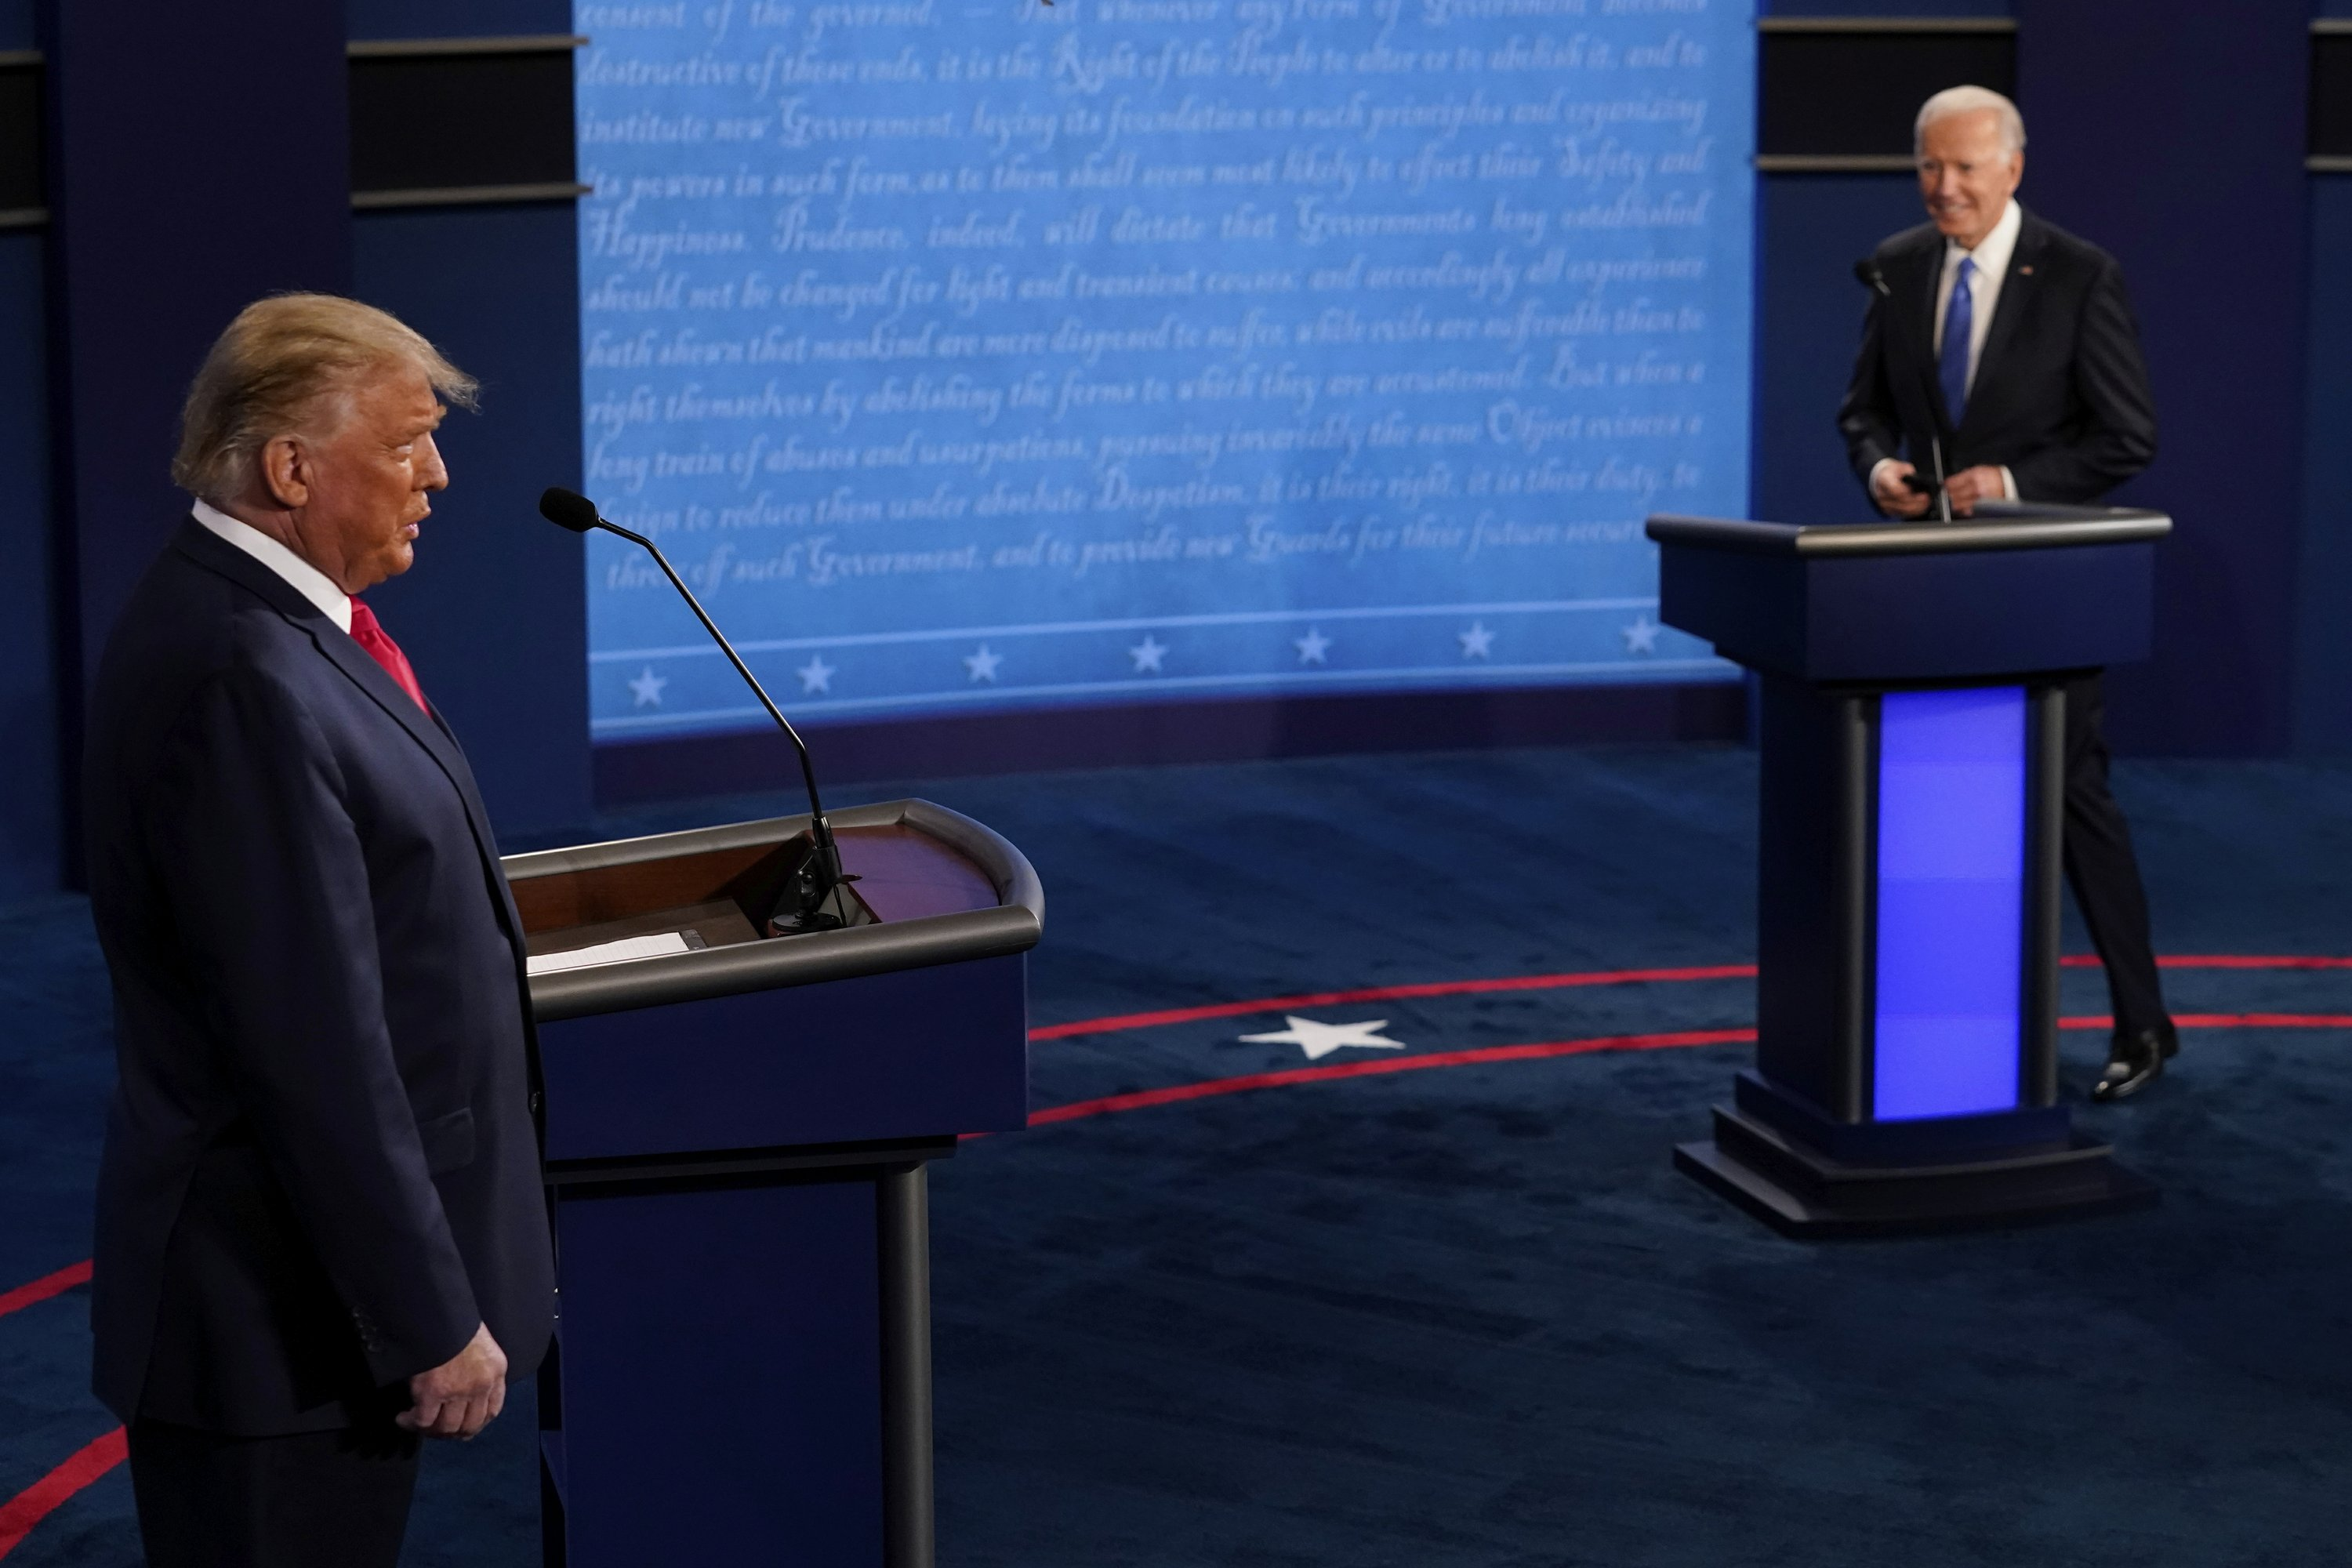 The Latest: Biden clarifies debate answer on fossil fuels